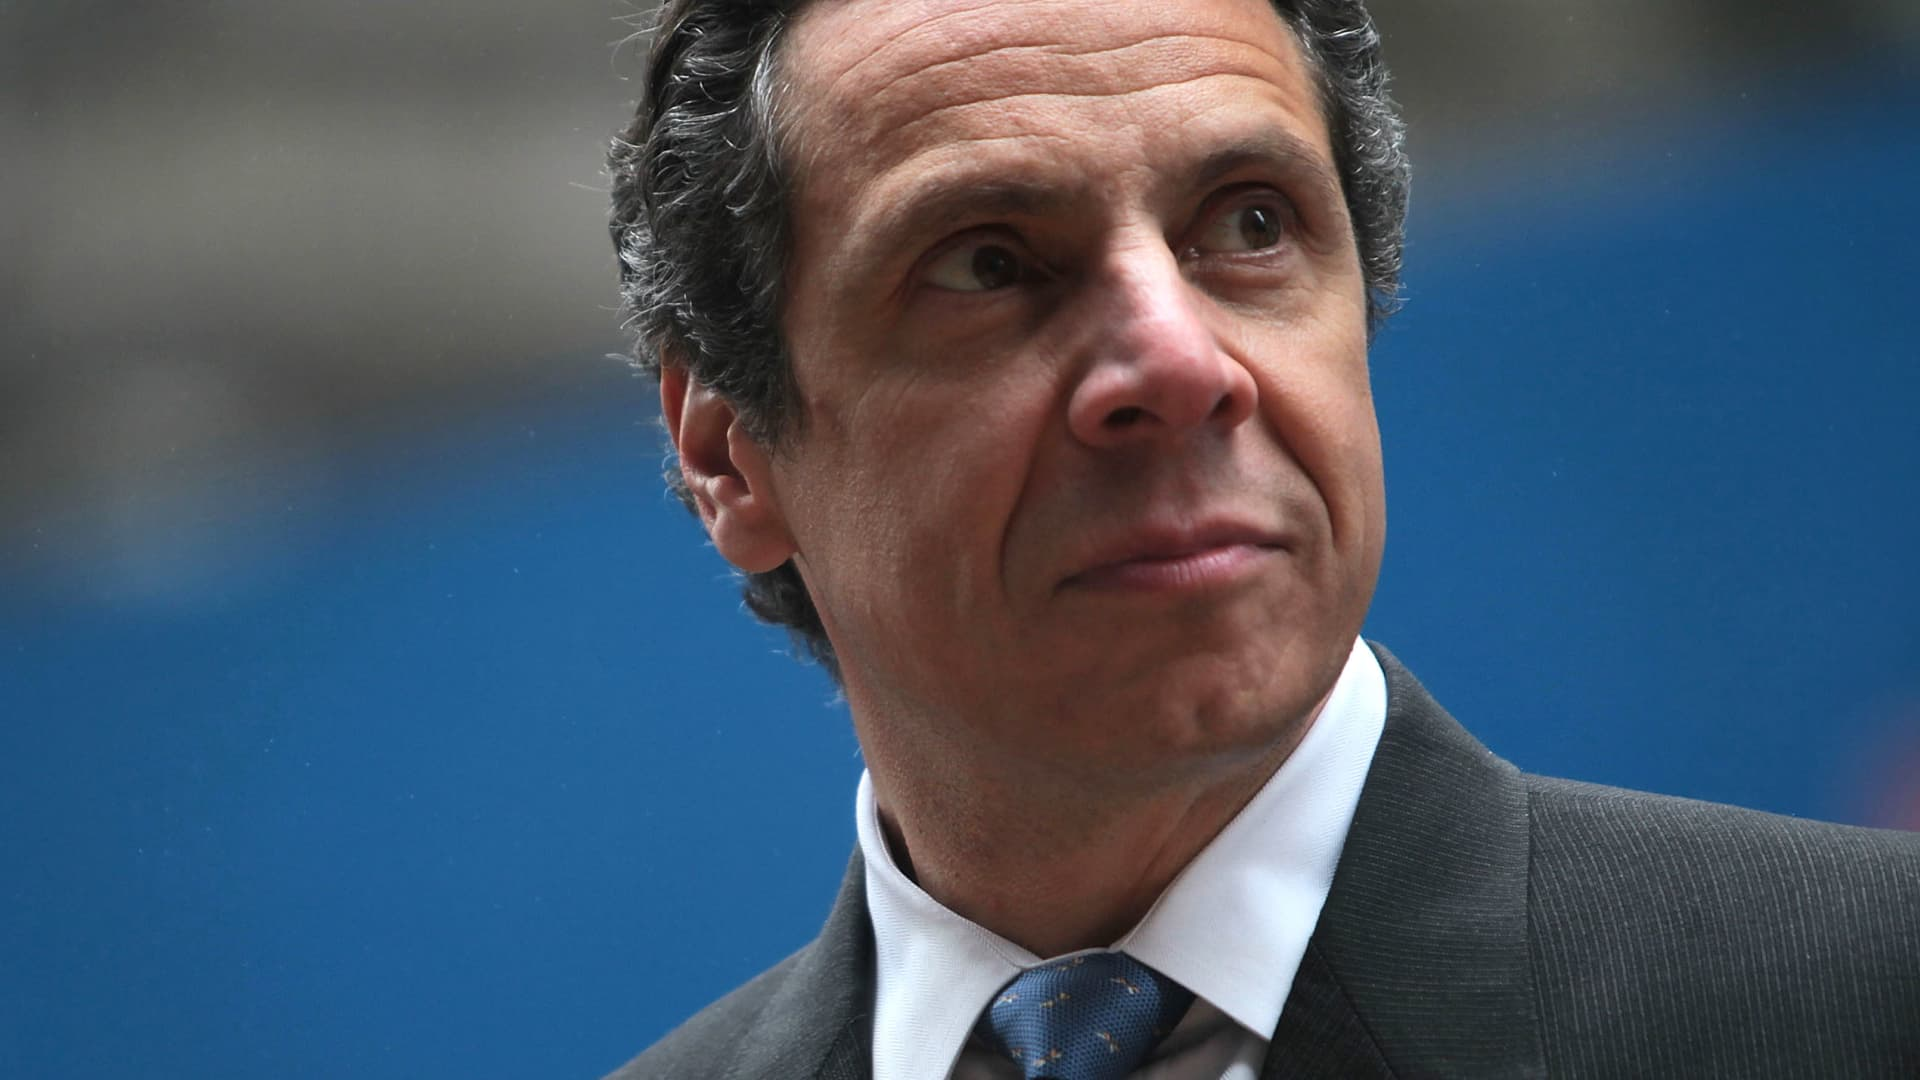 New York Attorney General Andrew Cuomo